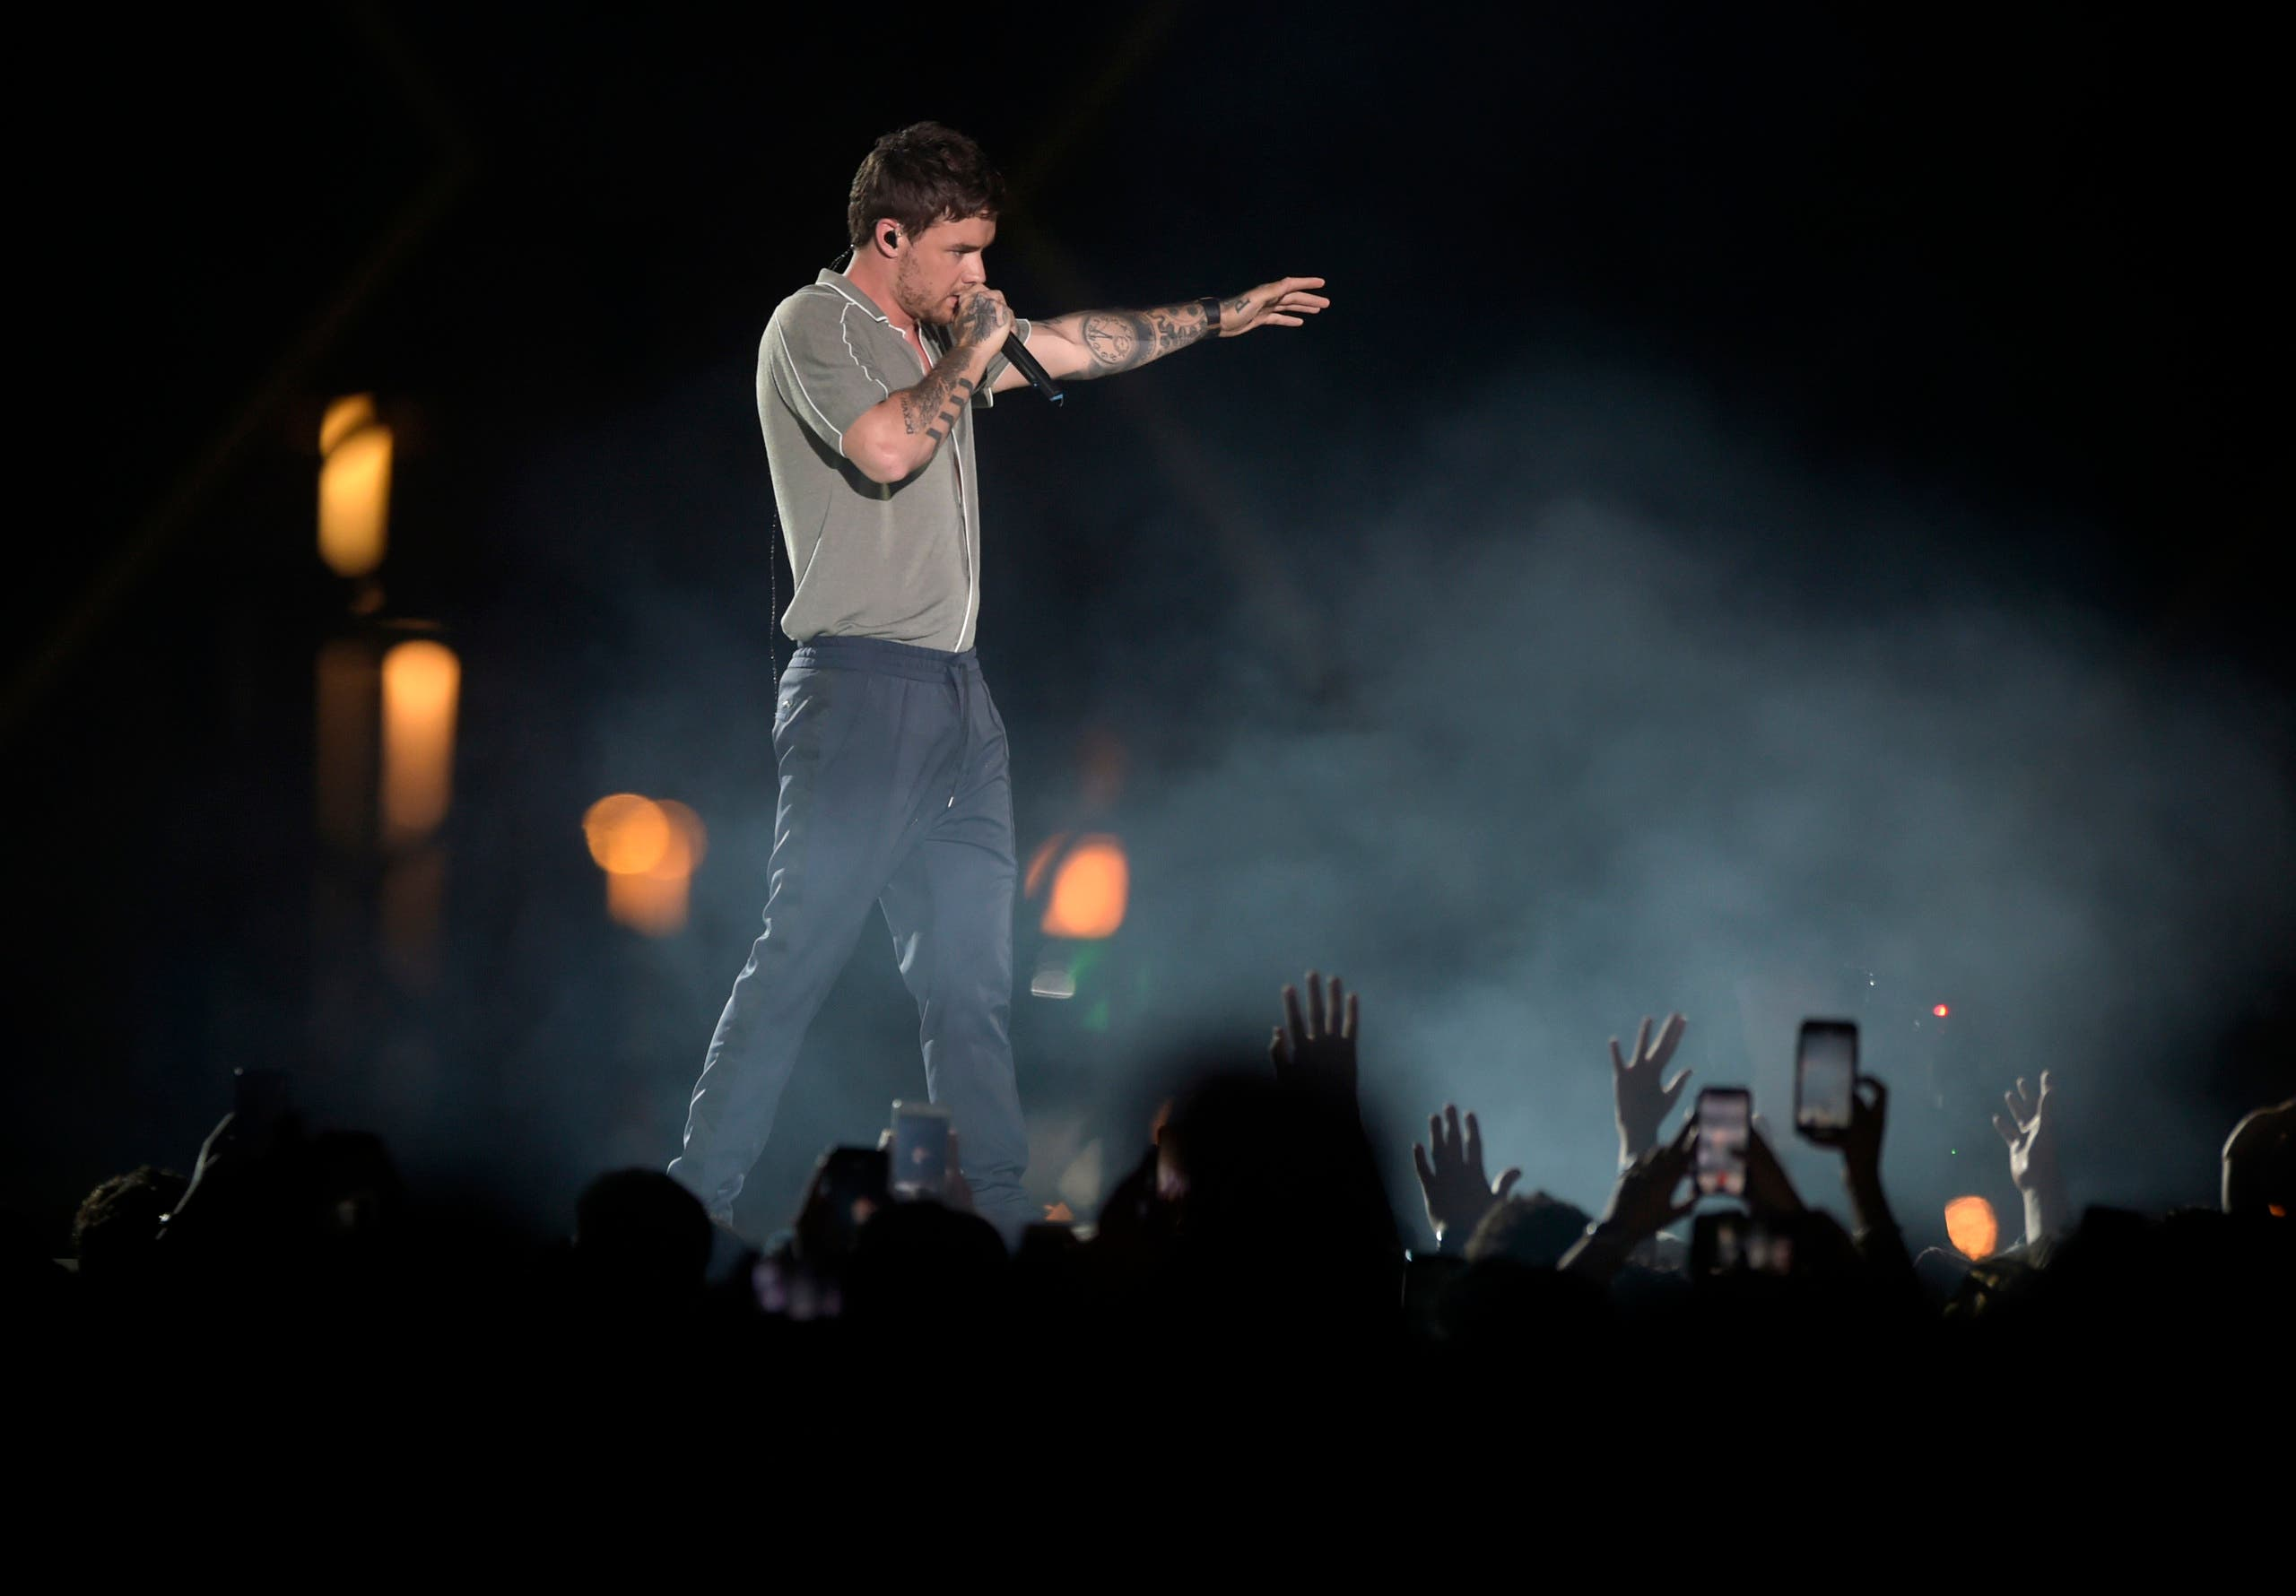 Fans wave to Liam Payne as he performs at the King Abdullah Sports Stadium, in Jeddah, Saudi Arabia, during the concert of Jeddah World Fest, late Thursday, July 18, 2019.  (AP)